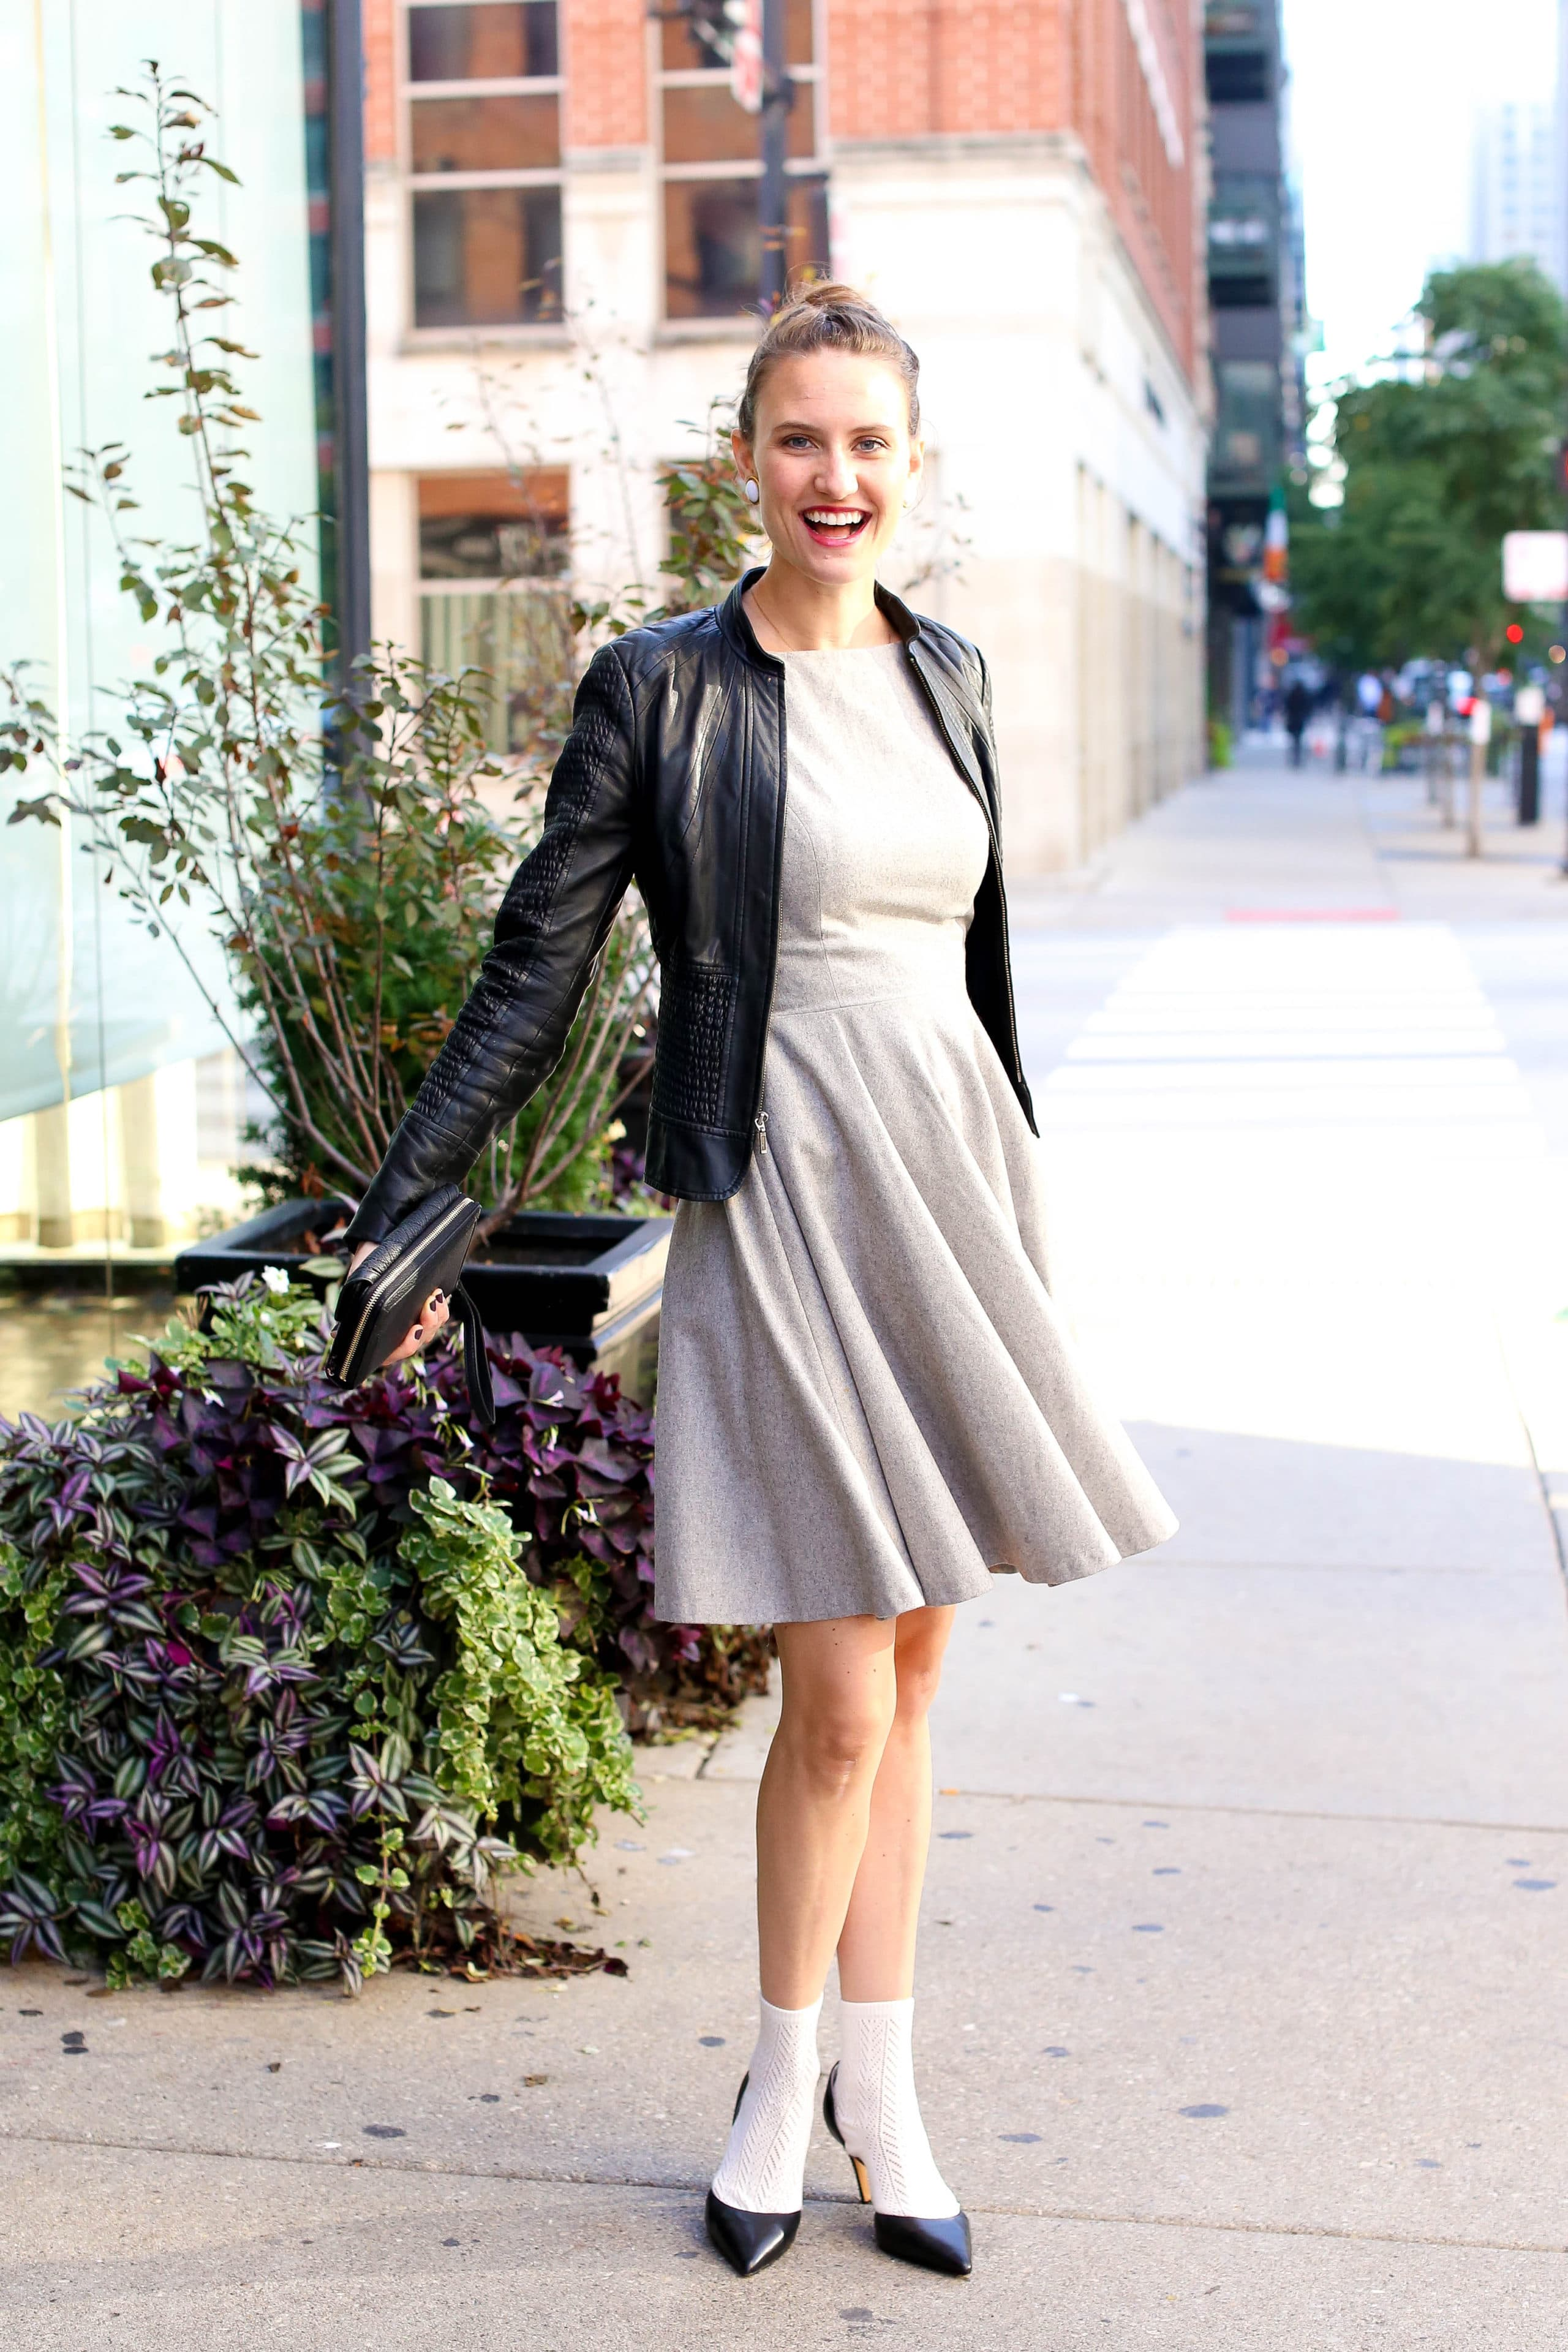 styling-socks-with-heels_black-leather-jacket_6